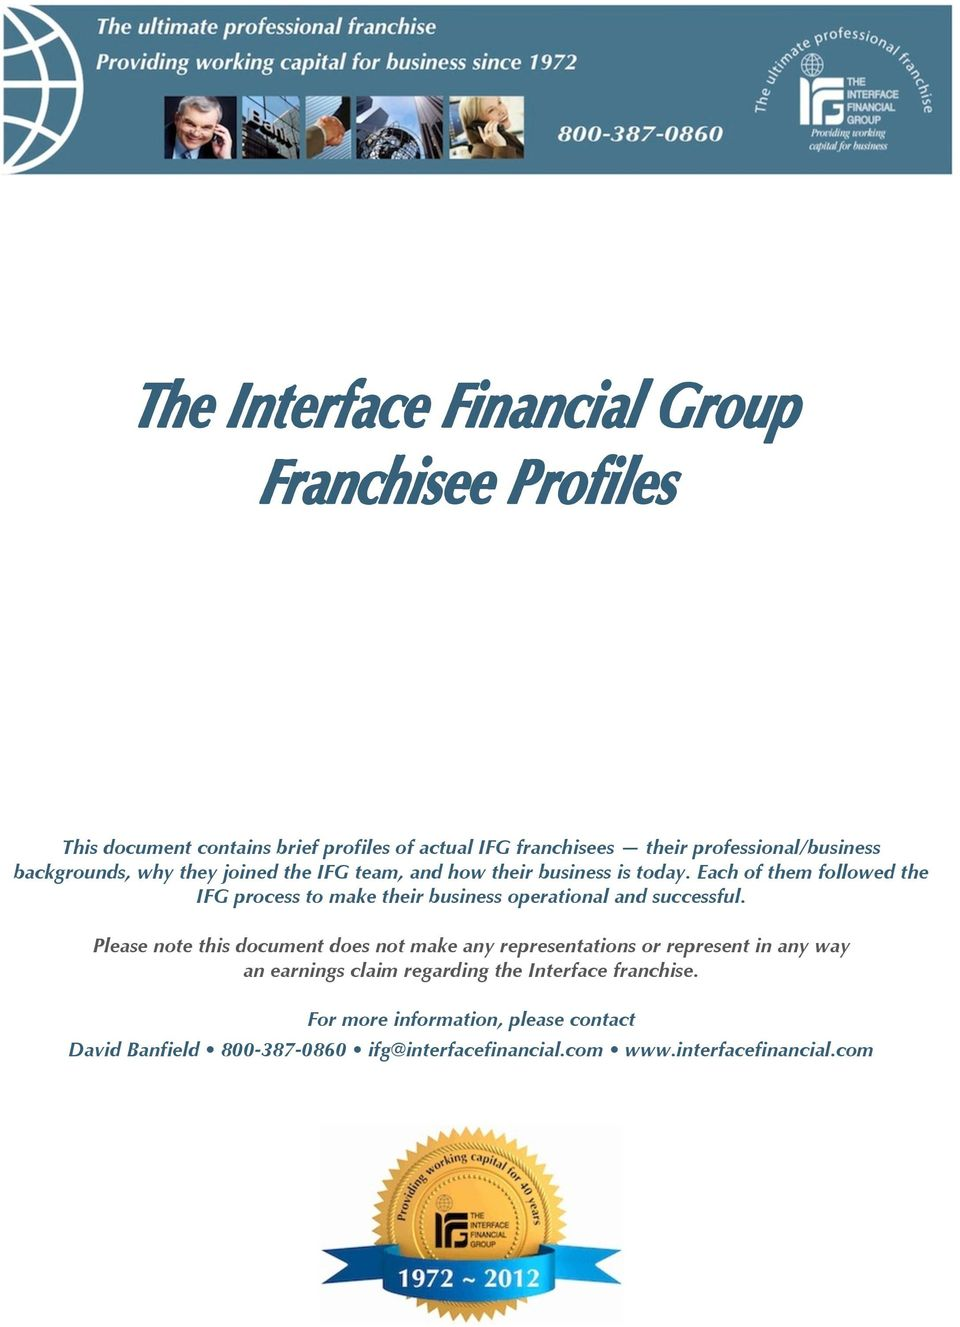 Each of them followed the IFG process to make their business operational and successful.